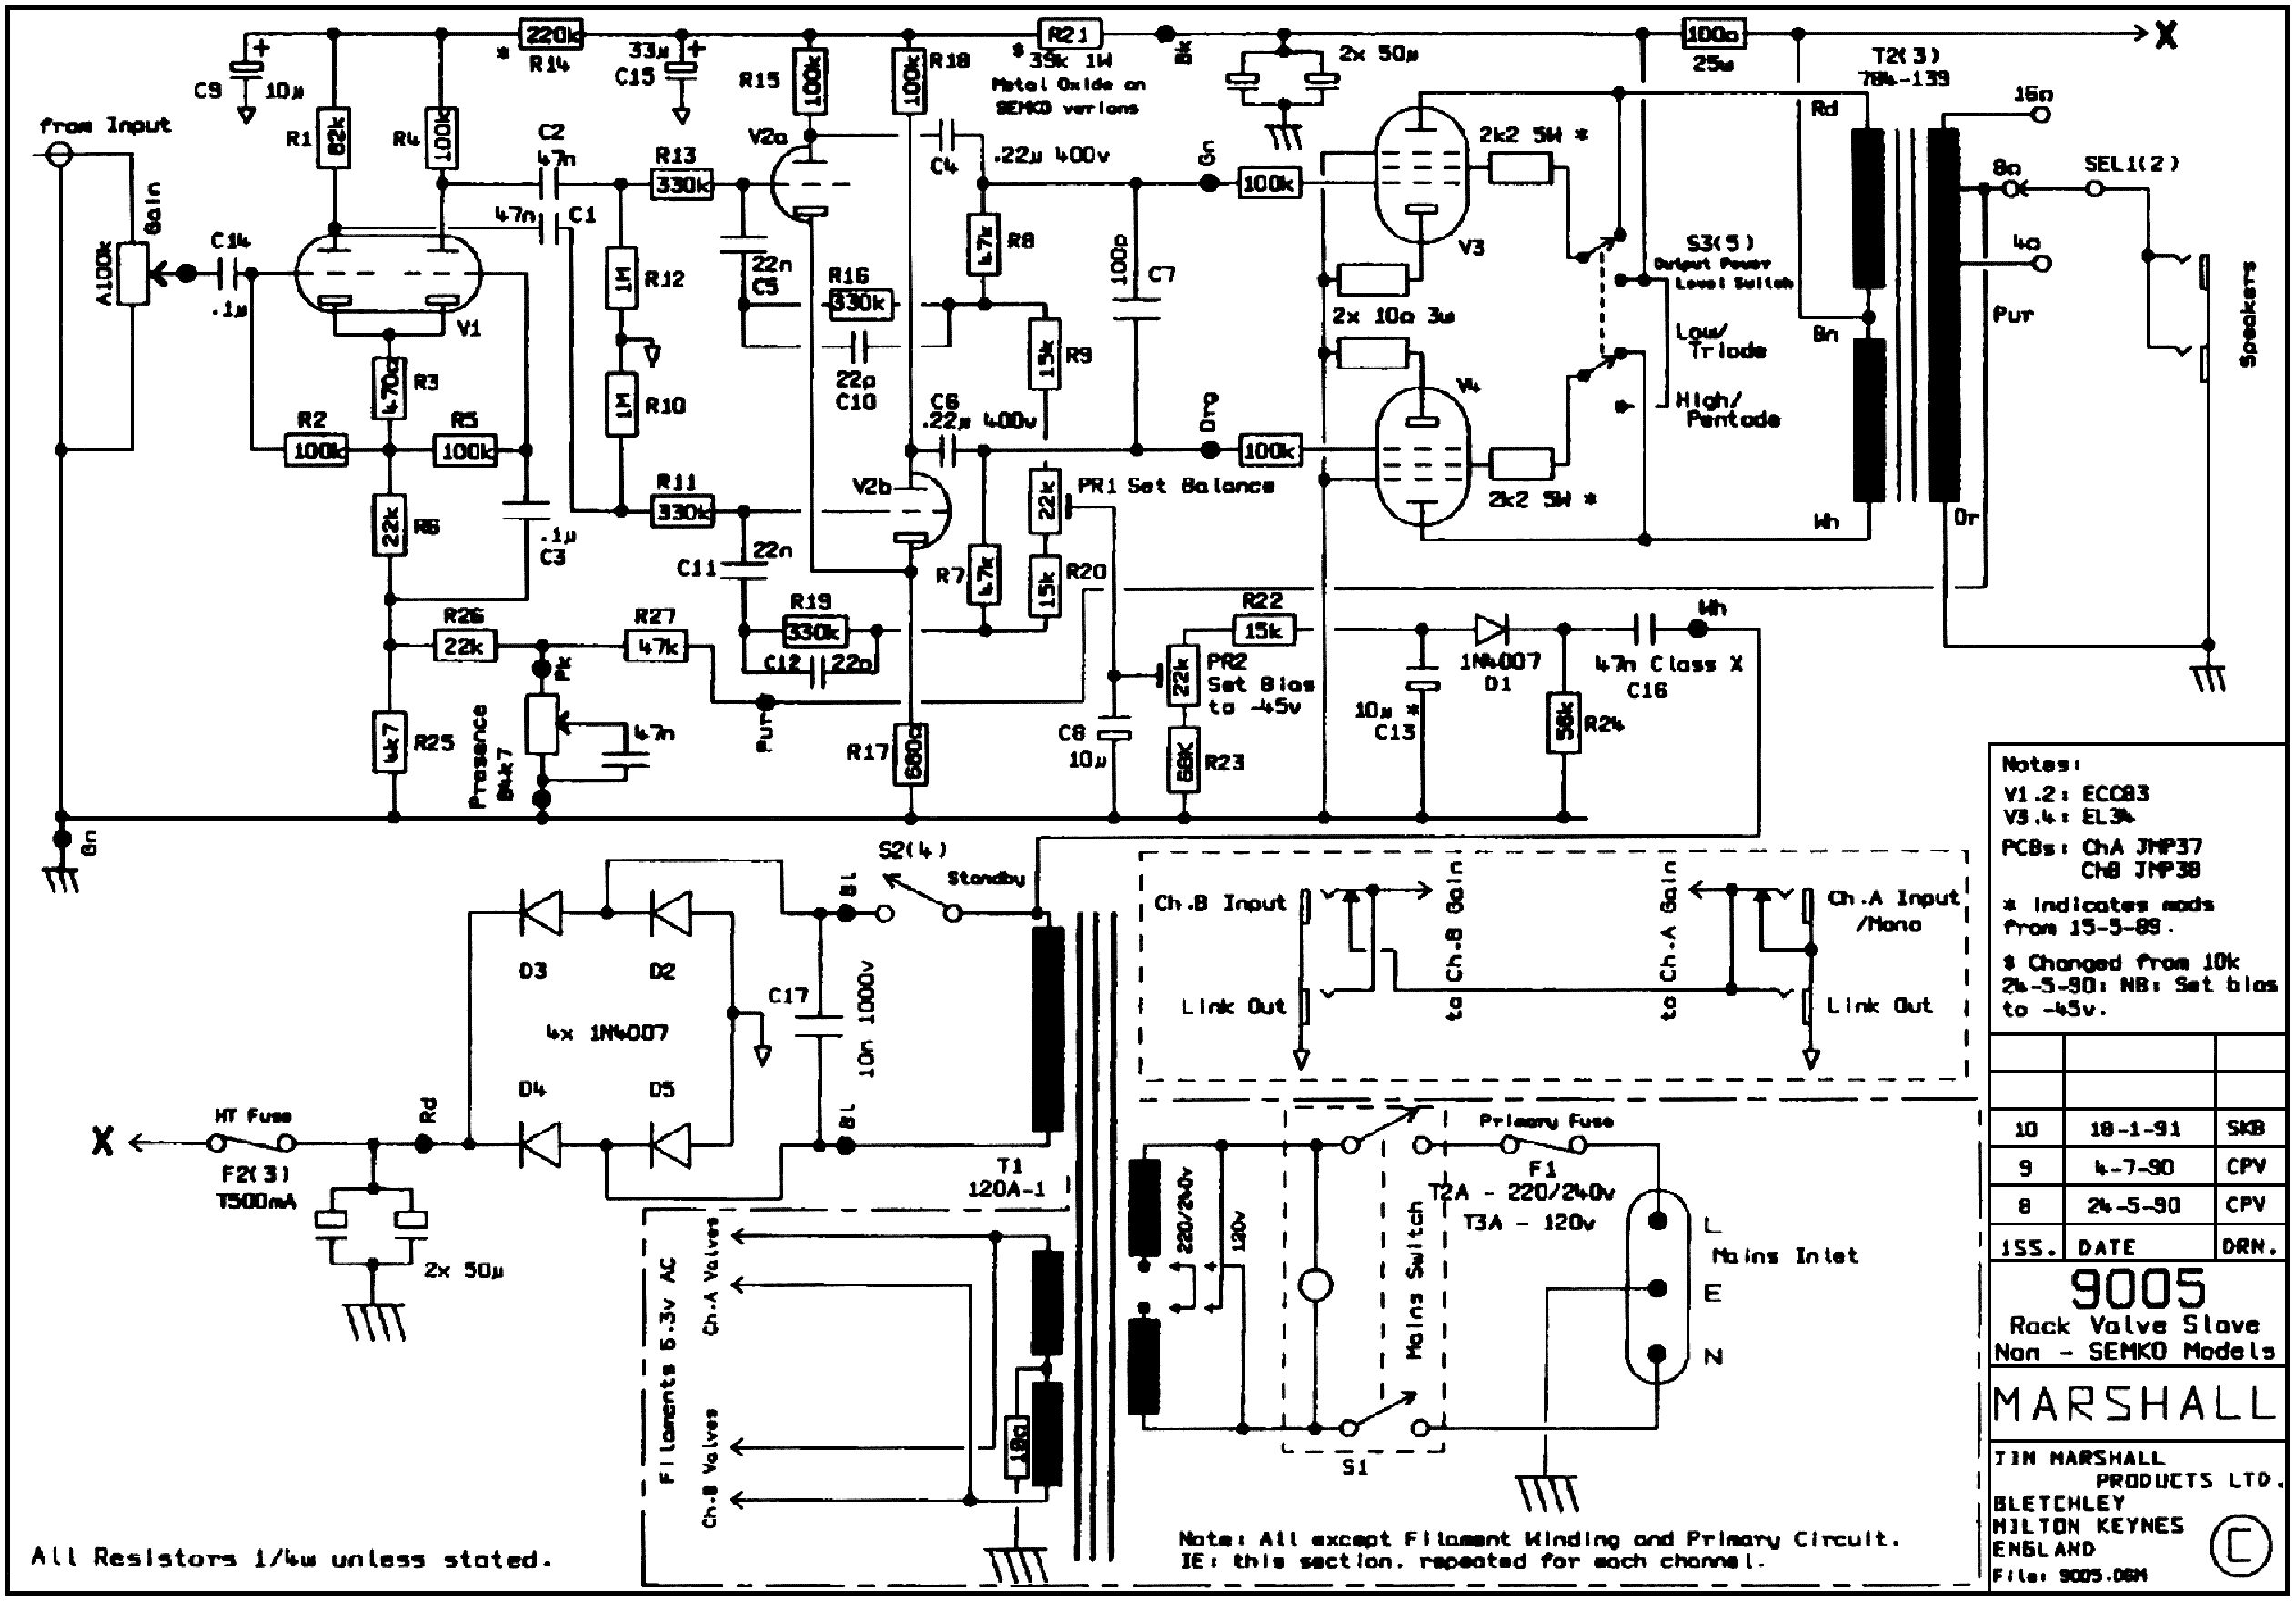 Dsl40c Wiring Diagram Libraries Northstar 6000i Diagramselektrotanya Com Previews 63463243 23432455 Marsha A Potentiometer For Motor